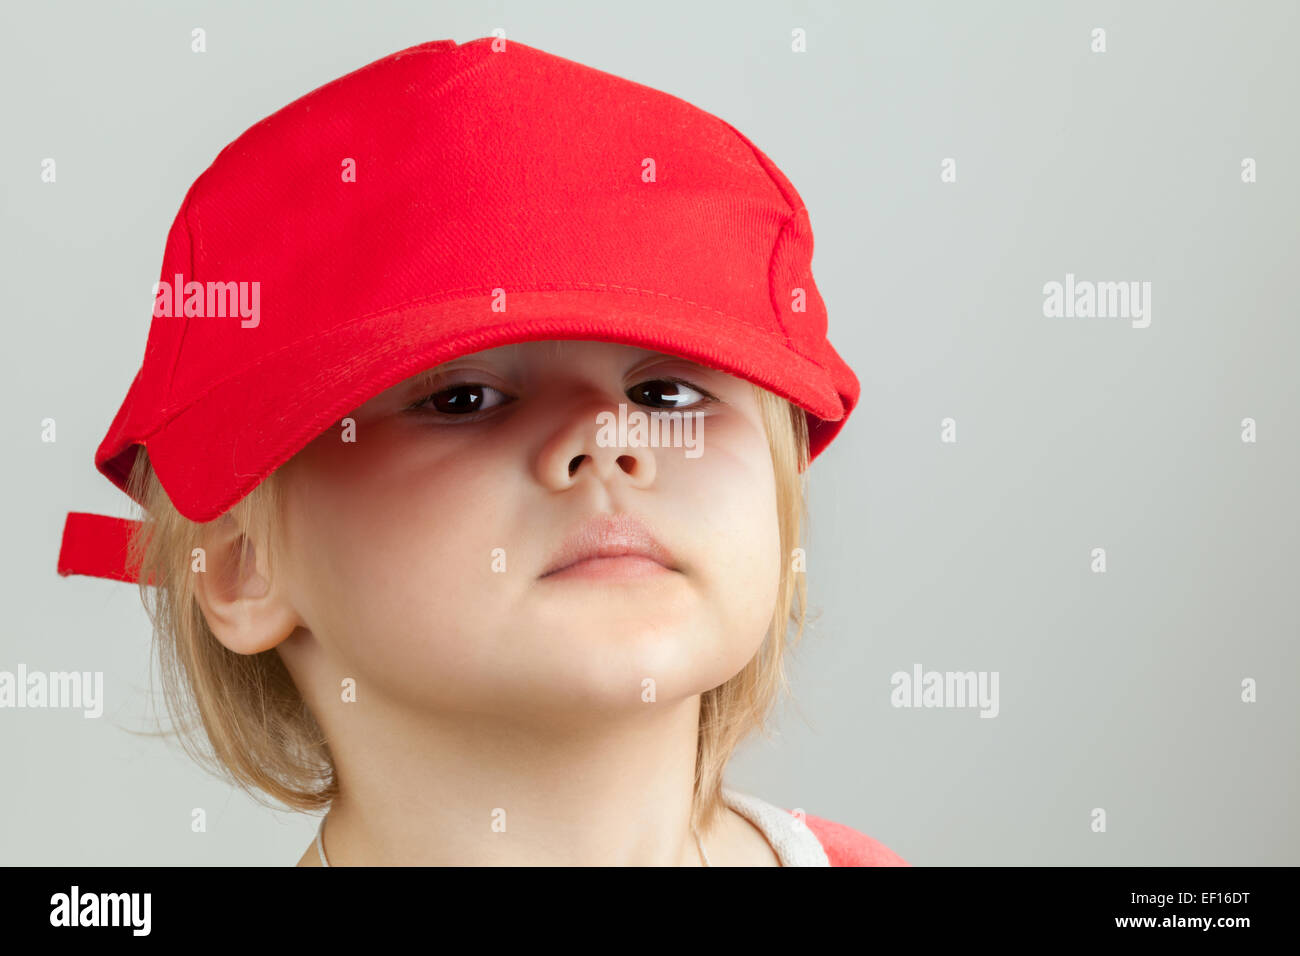 Studio portrait of funny baby girl in big red baseball cap over gray wall  background ef393283a7db